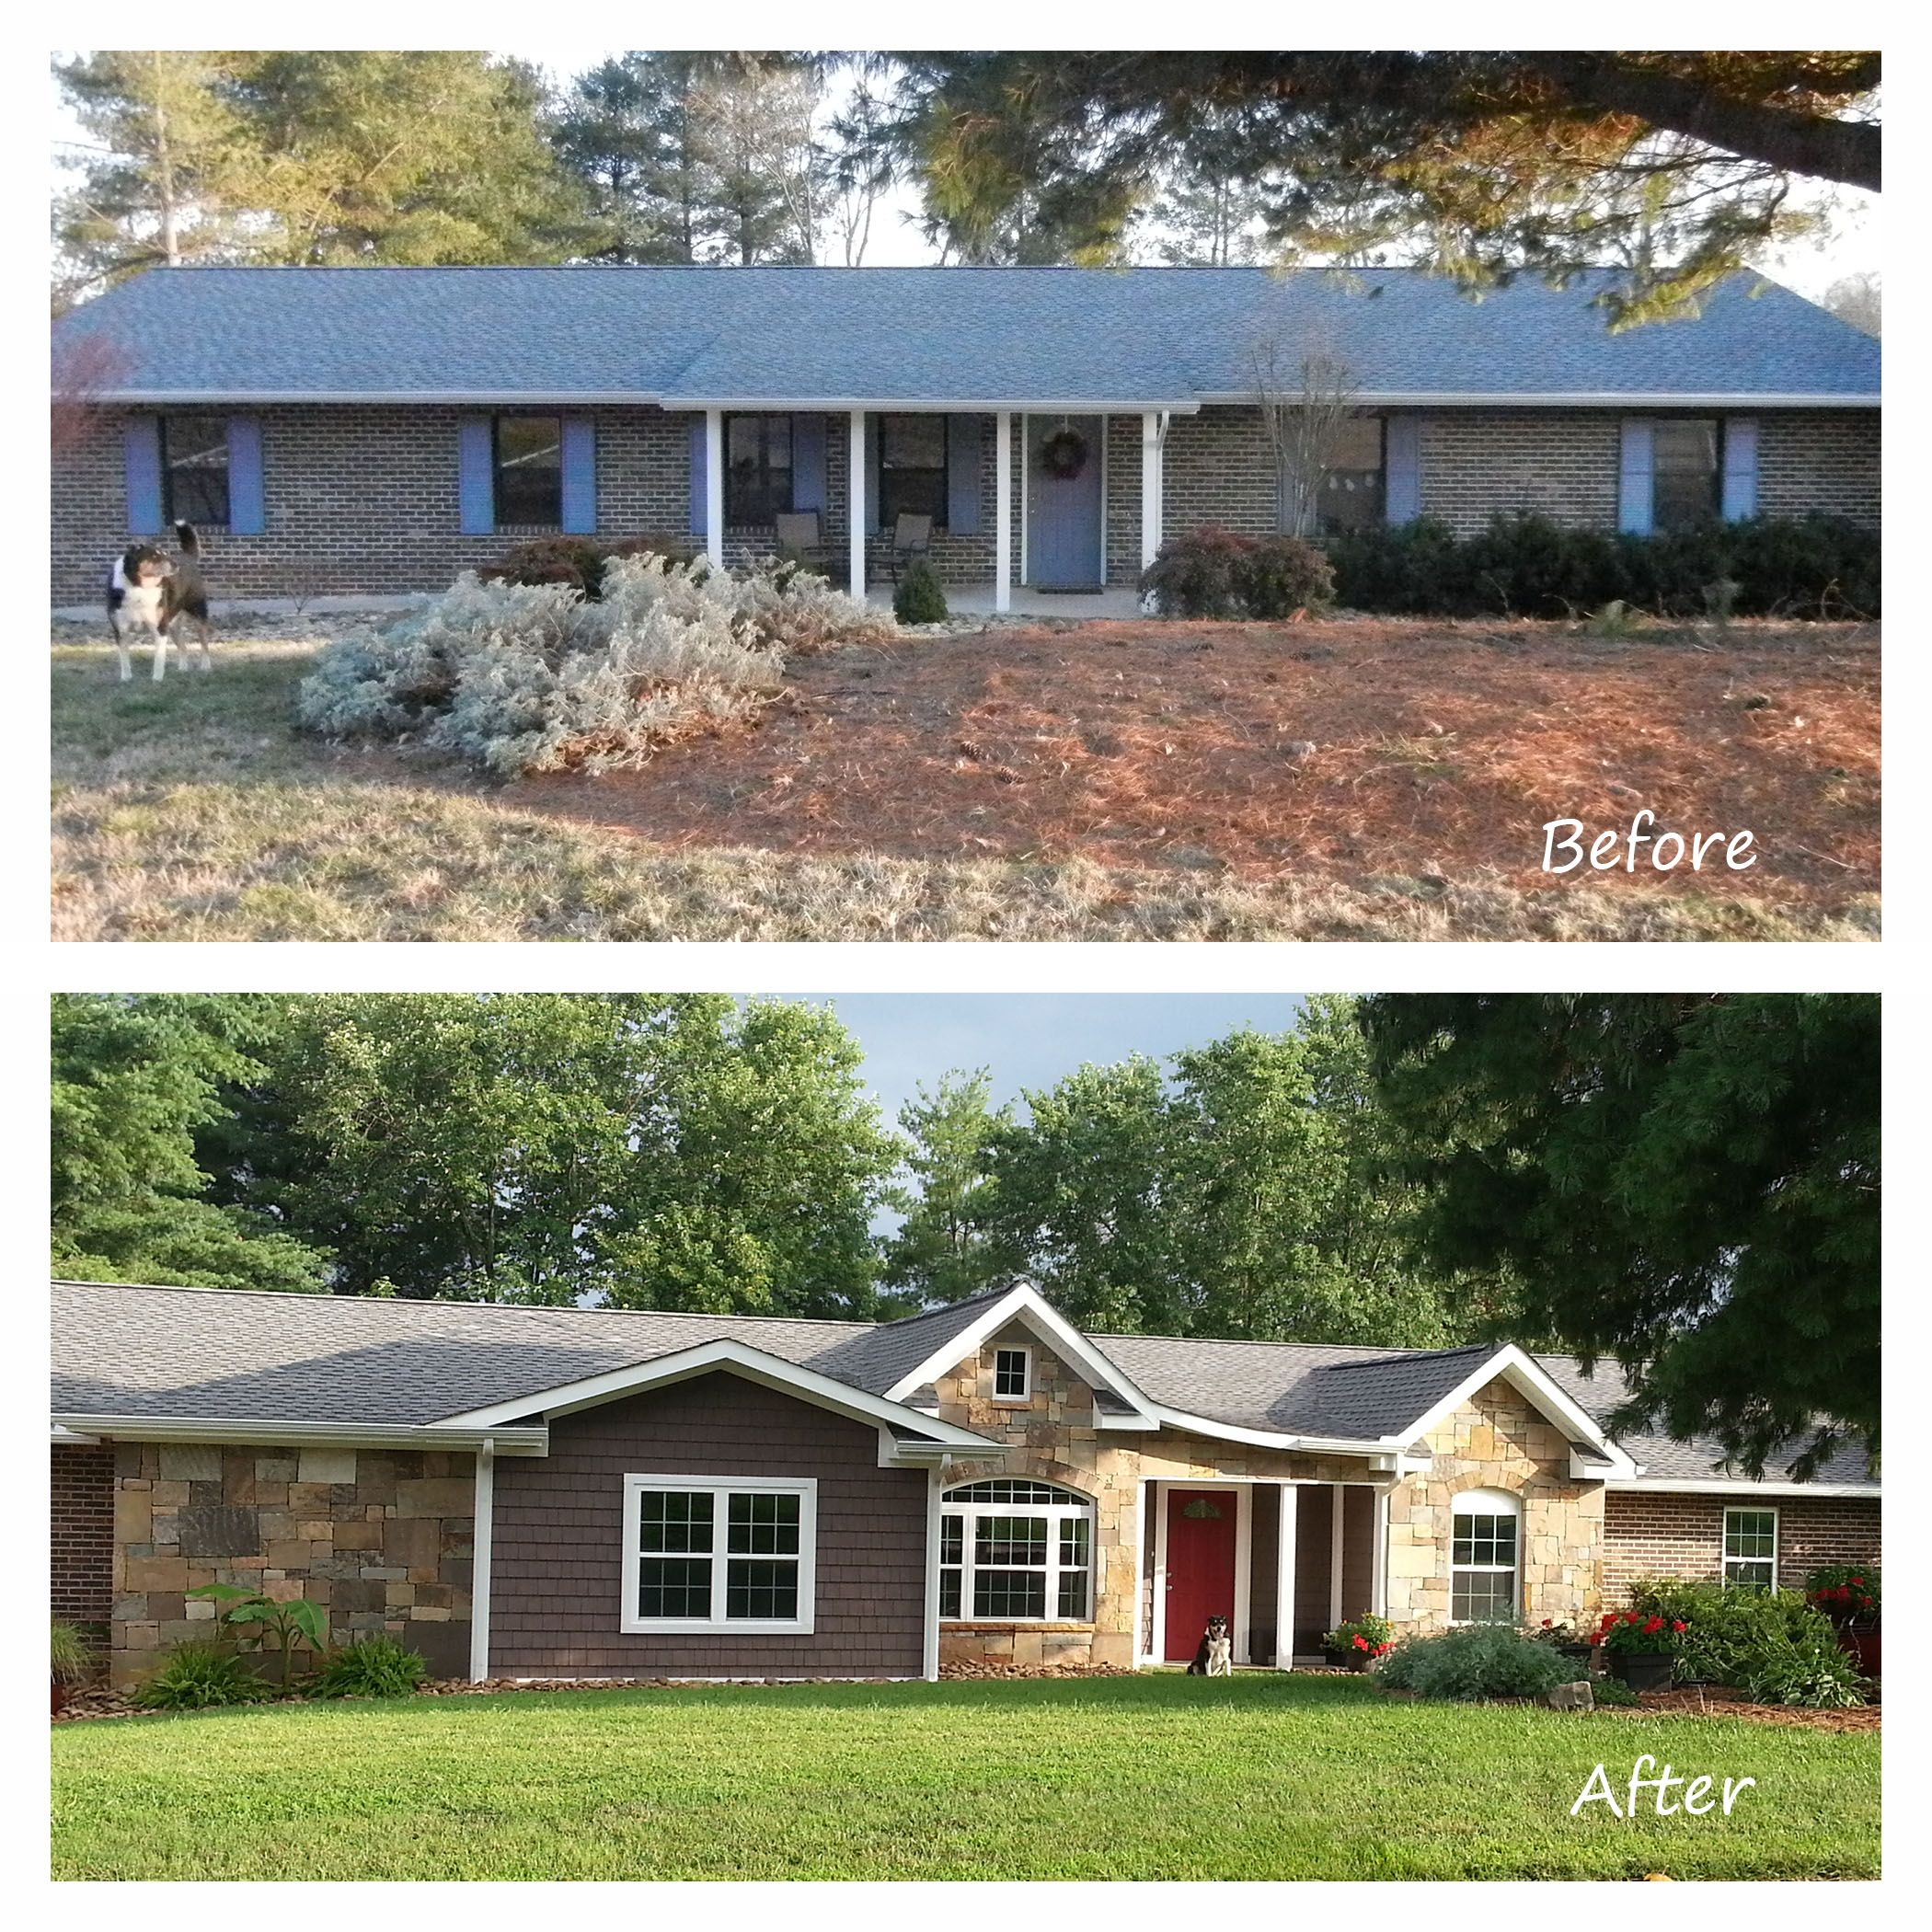 ranch style house remodel before and after home redesign Before and After Exterior Renovation. Ranch house remodel with stone,  shakes, and brick.